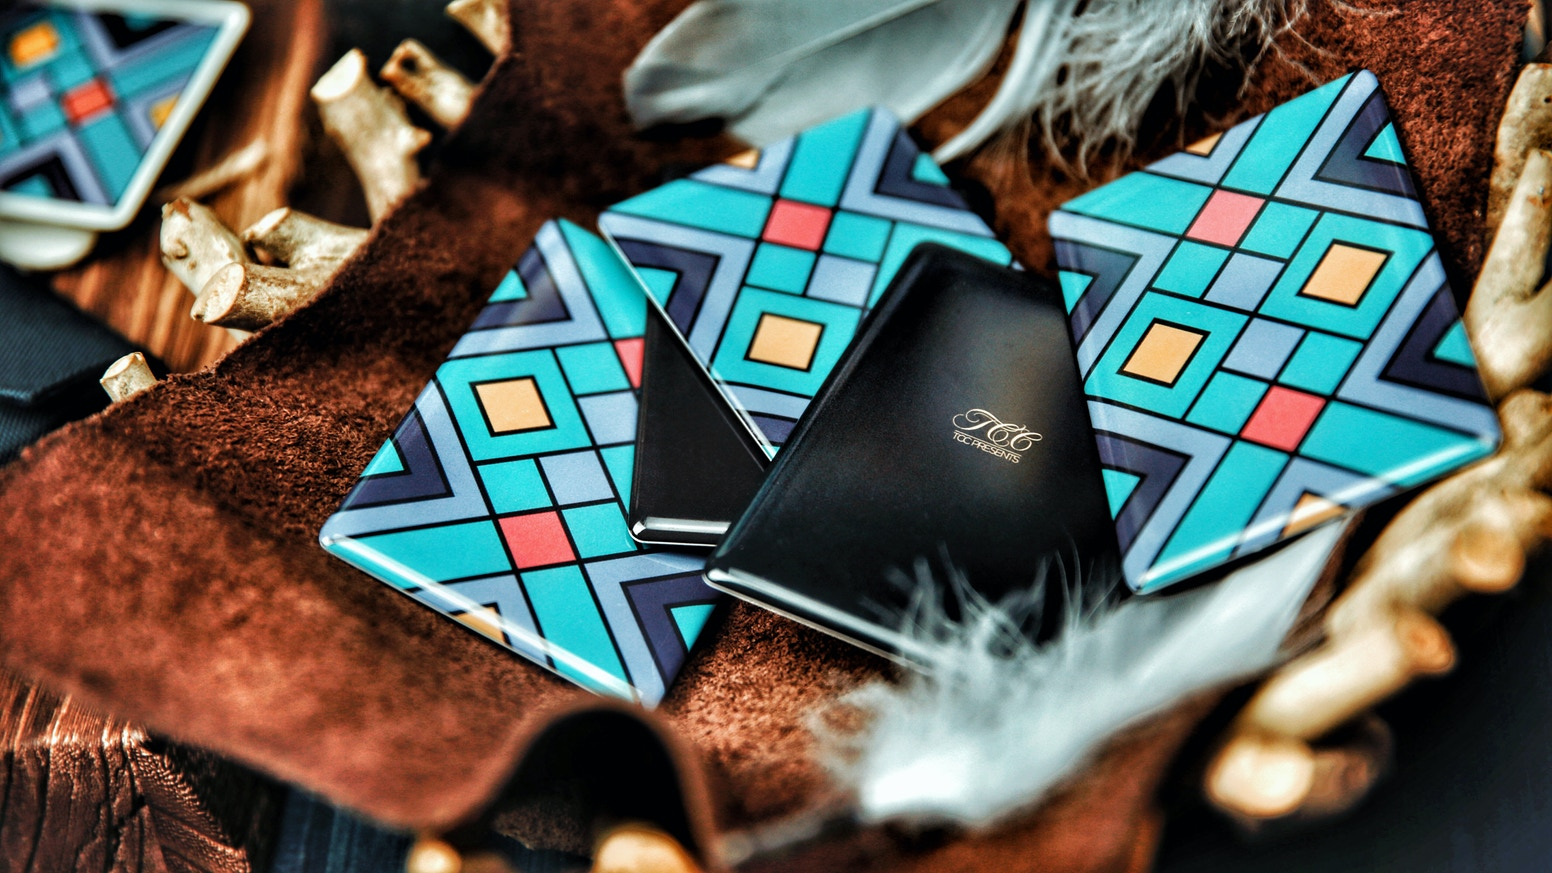 Specially designed for training,Perfect edge radians.Full with a curved screen,great handling and smooth for cardistry.